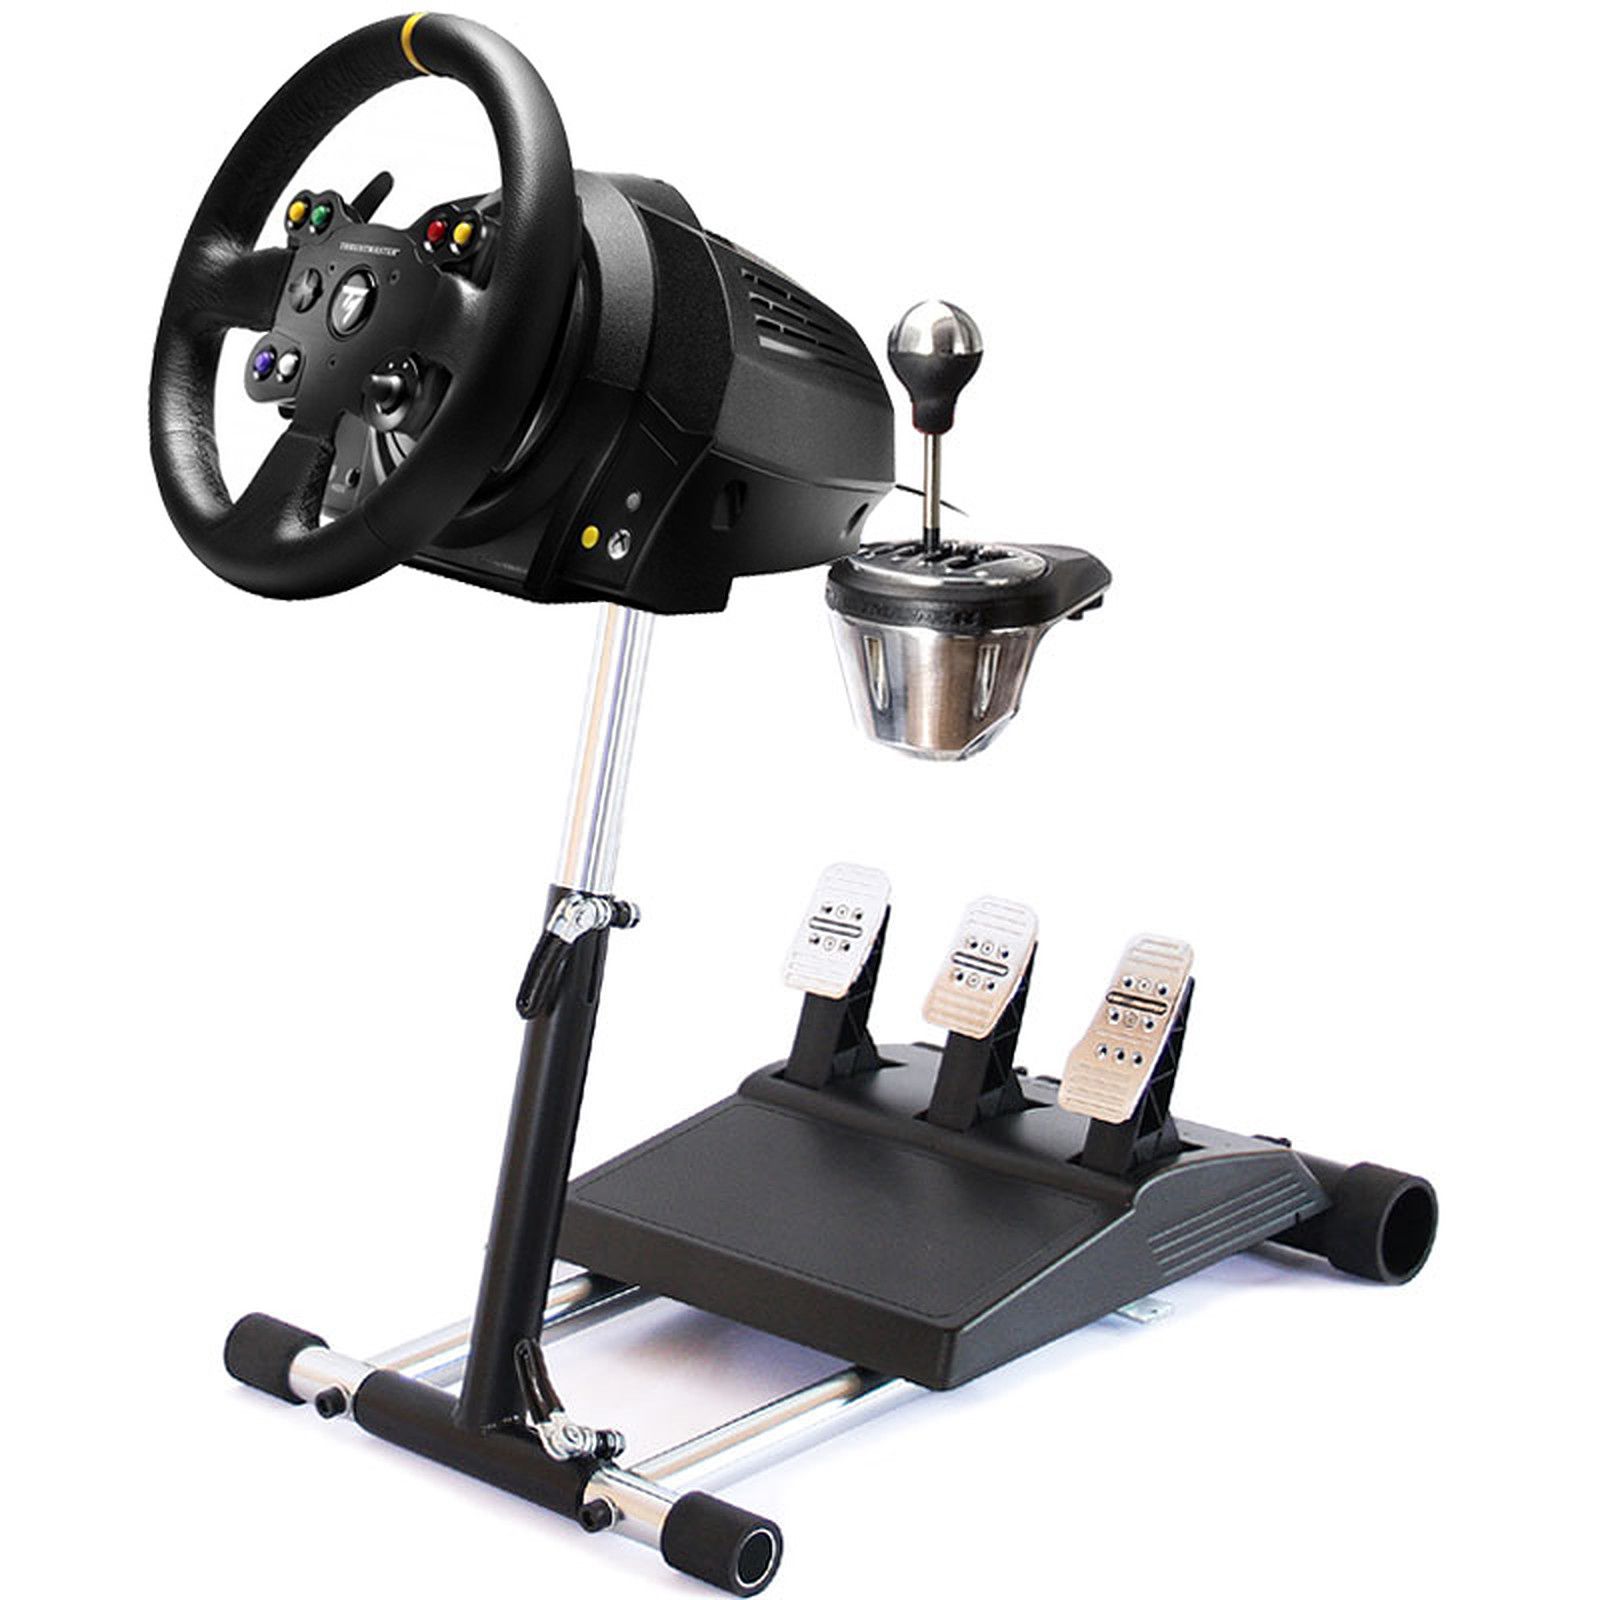 Thrustmaster TX Racing Wheel Leather Edition + TH8 Add-On Shifter + Wheel Stand Pro v2